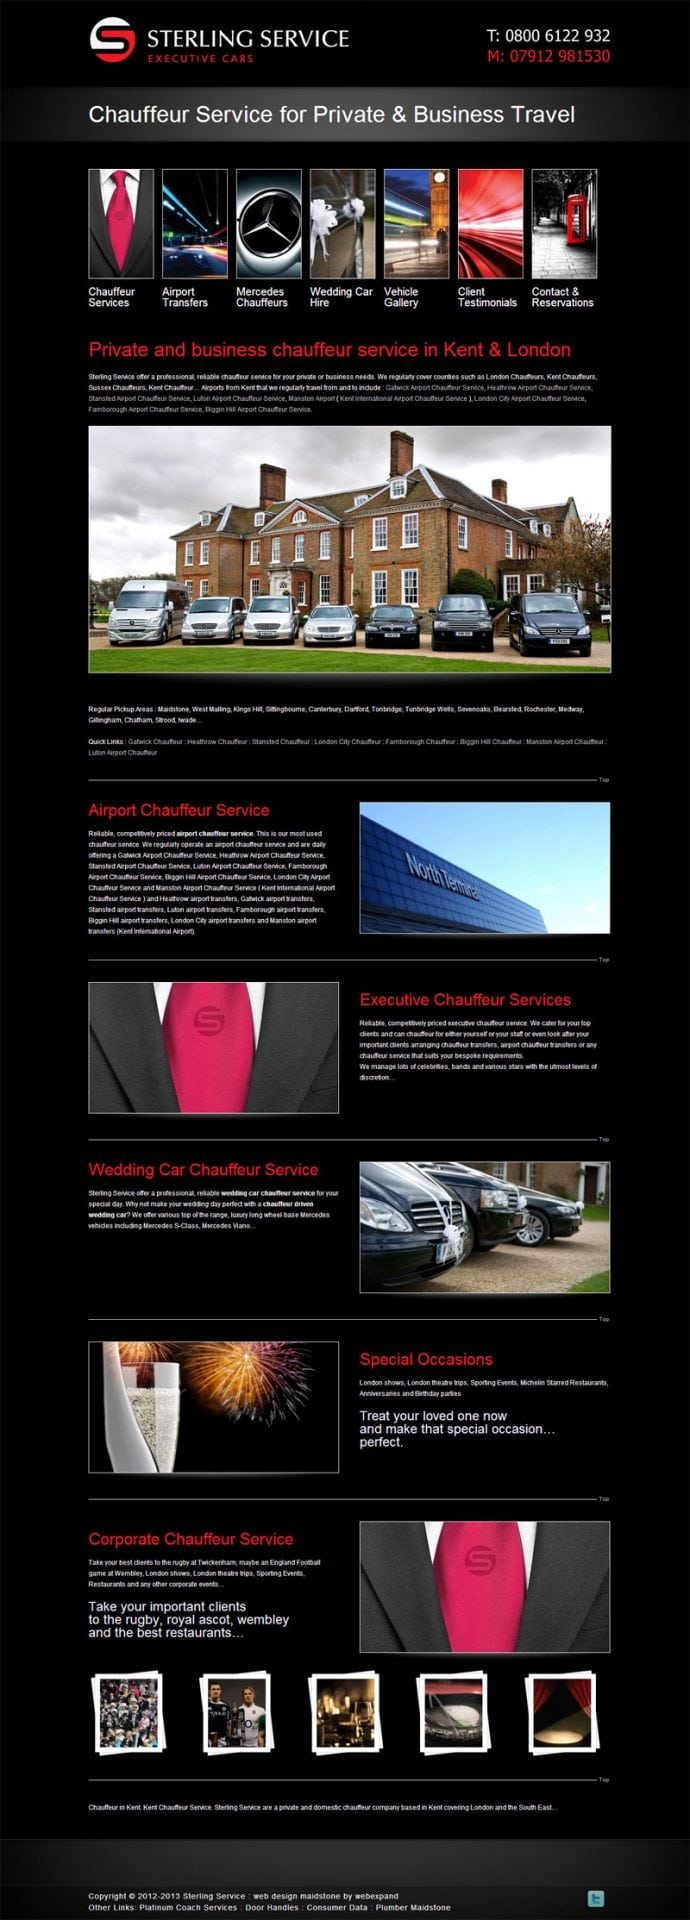 Chauffeur website design from Webexpand : STERLING SERVICE